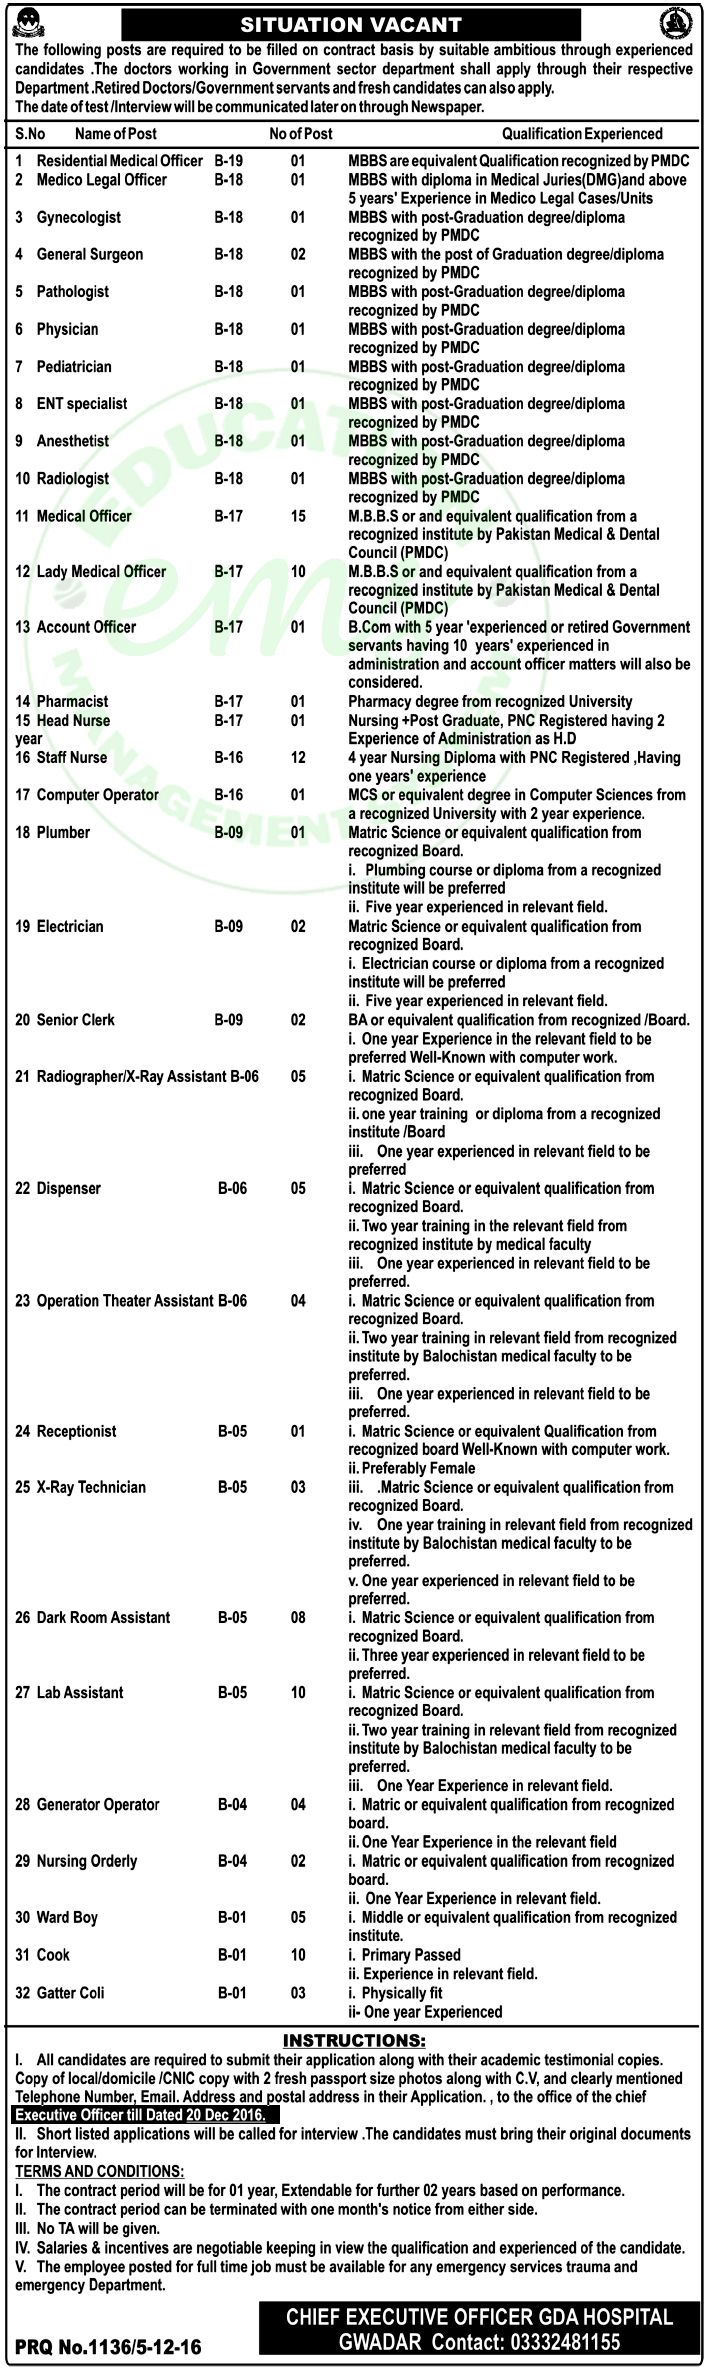 Teachers Jobs in Public School Gadap Karachi December 2016       Daily Newspaper Jobs 2016 | Jobs in Pakistan | Government Jobs |  Saudi Arabia Jobs | NTS Jobs      Vacancy / Positions of this Advertisement    Teachers Jobs in Public